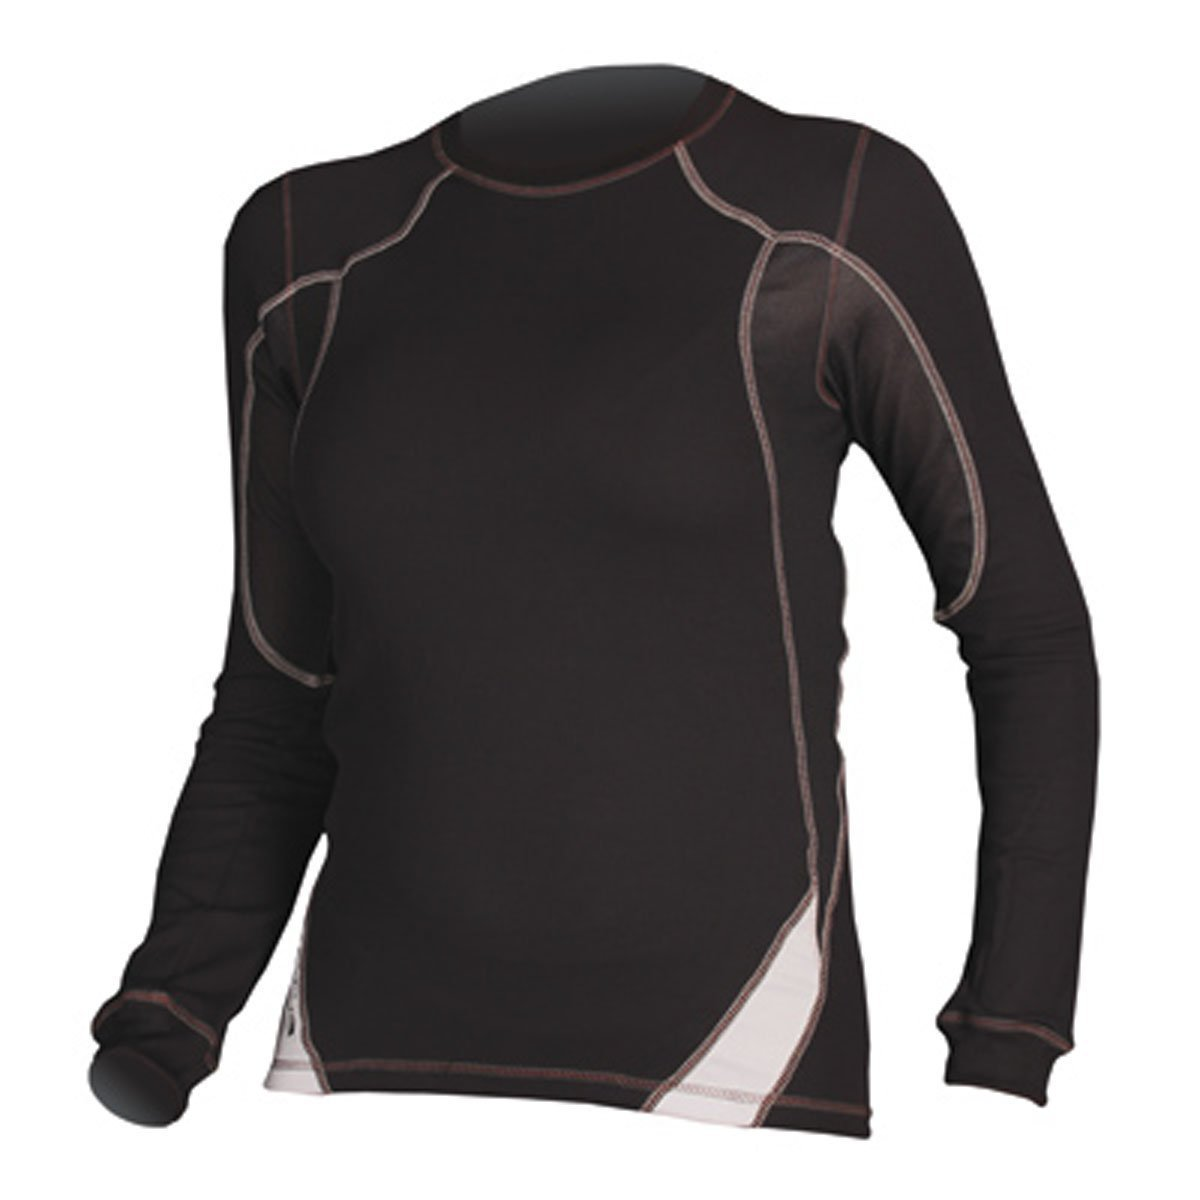 Endura Transmission Baselayer Womens Black - Just a few left in large